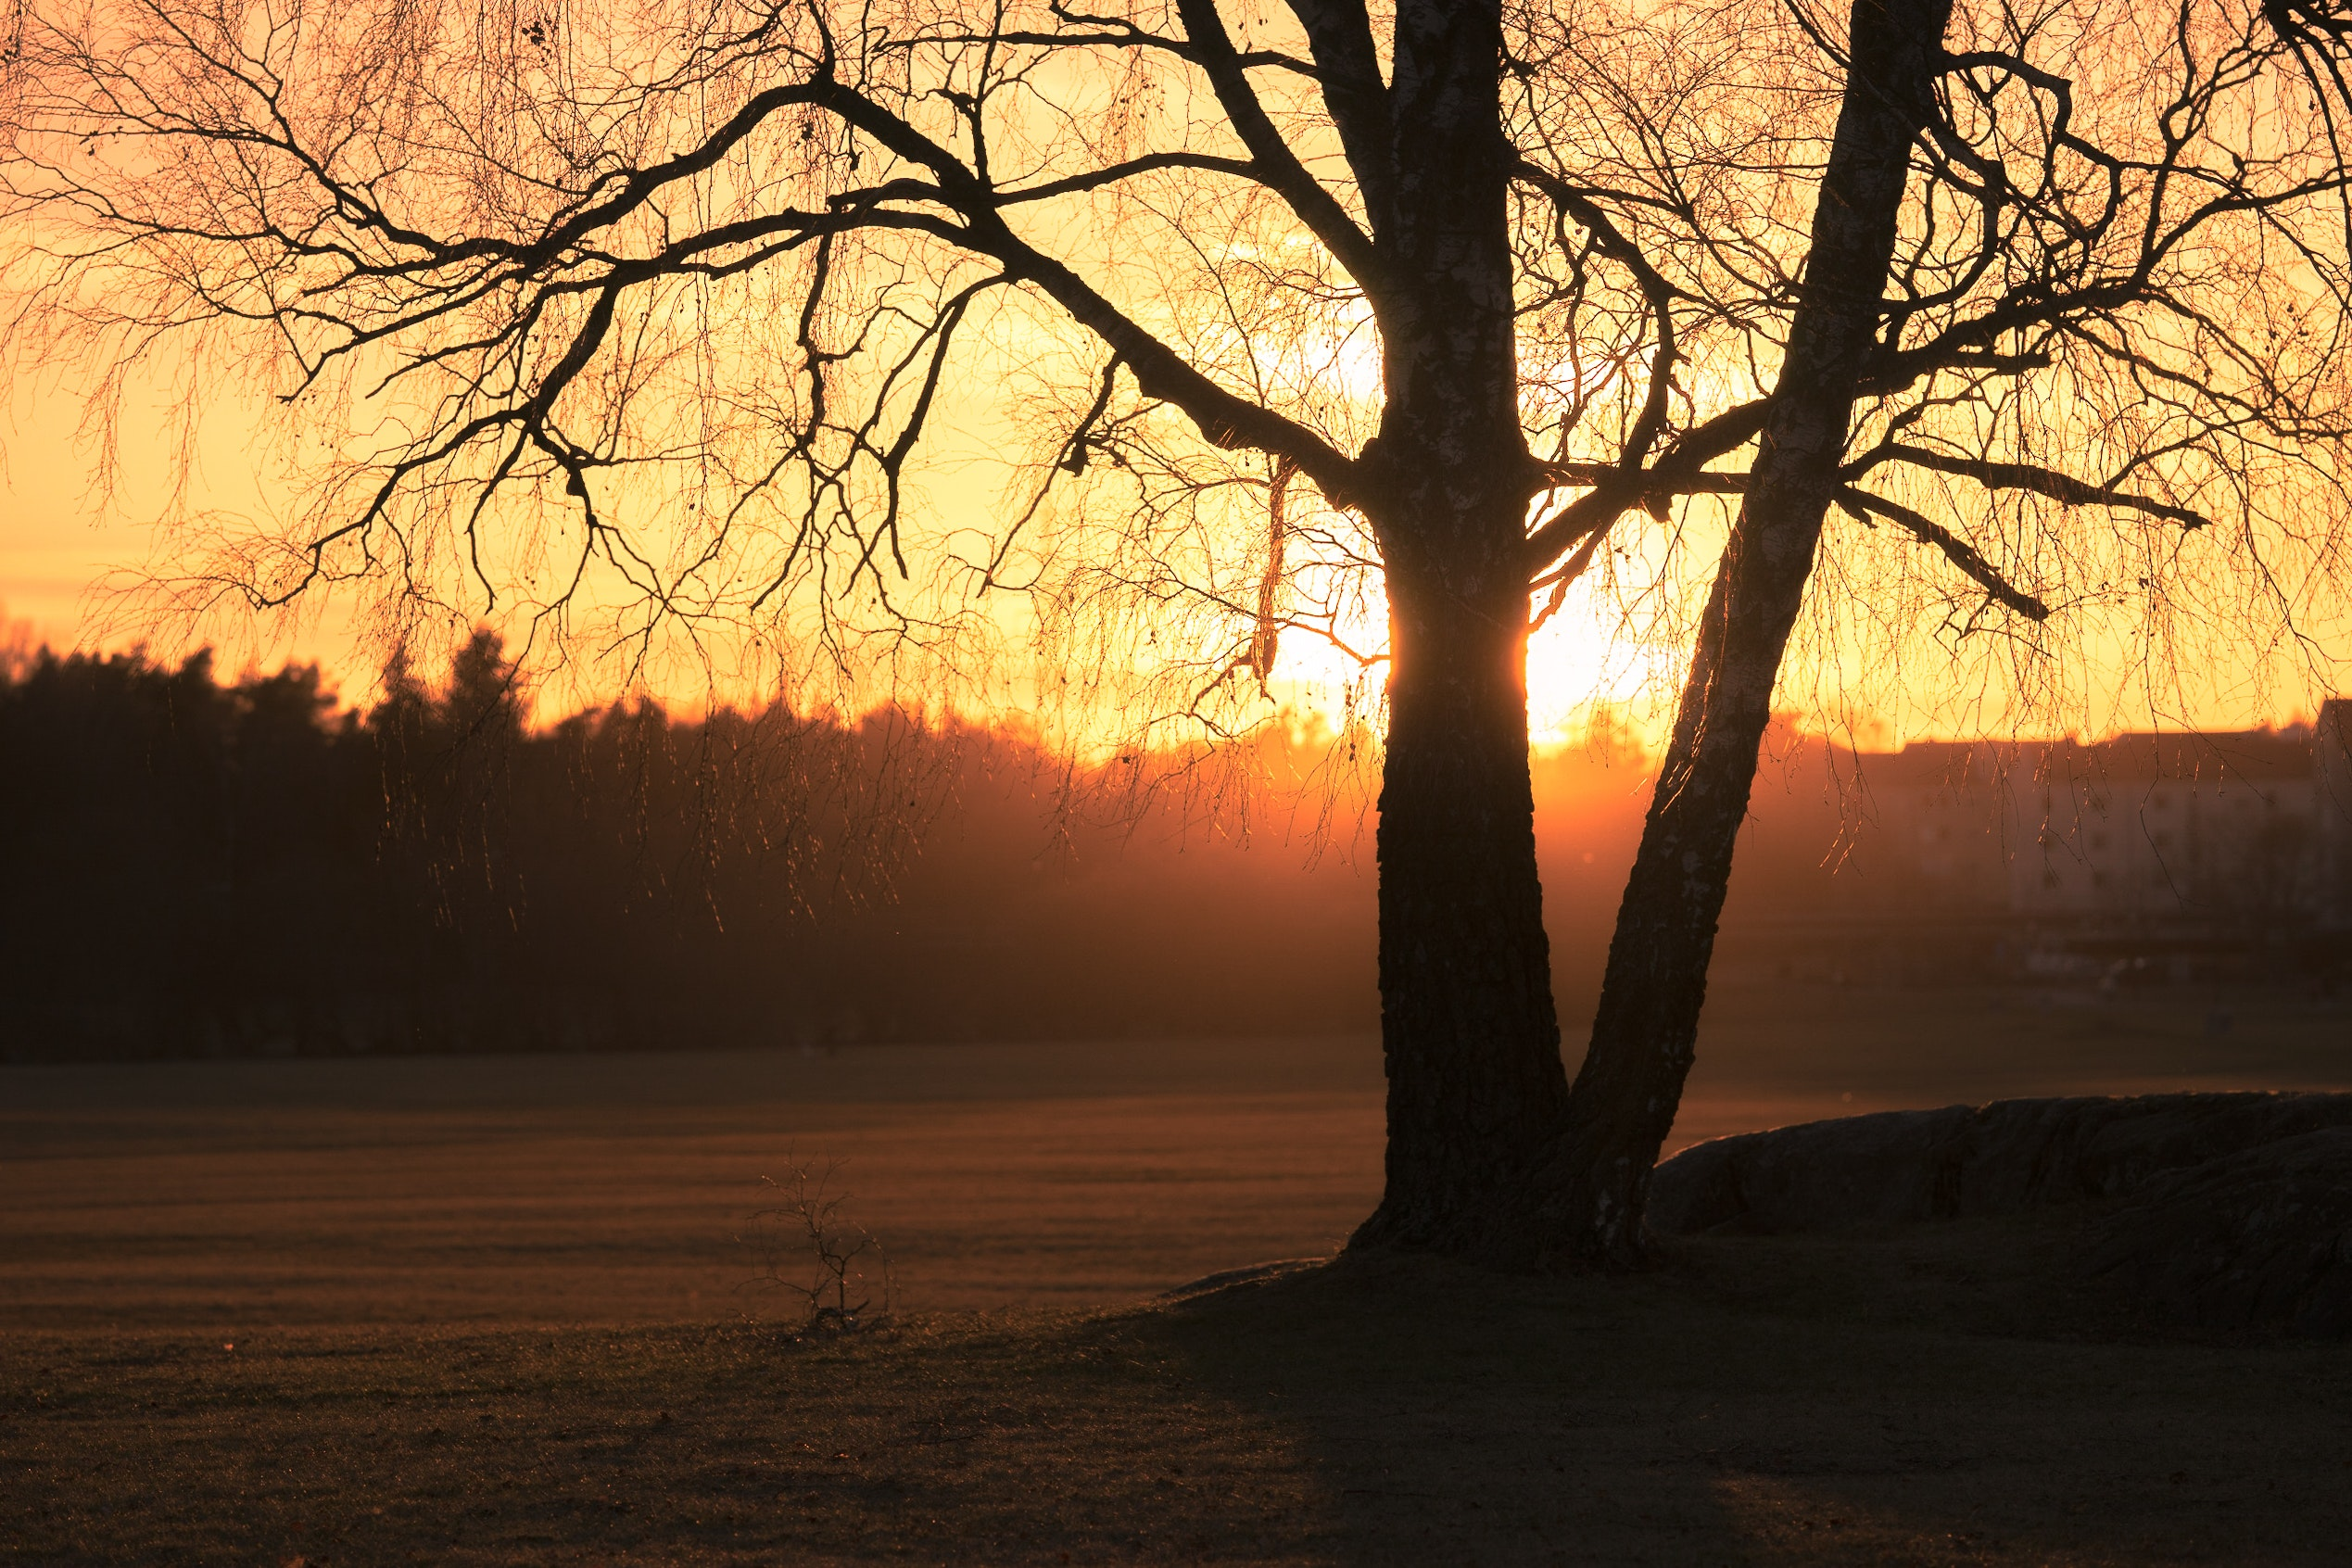 Silhouette Photo of Trees during Golden Hour, Backlit, Dawn, Dusk, Landscape, HQ Photo